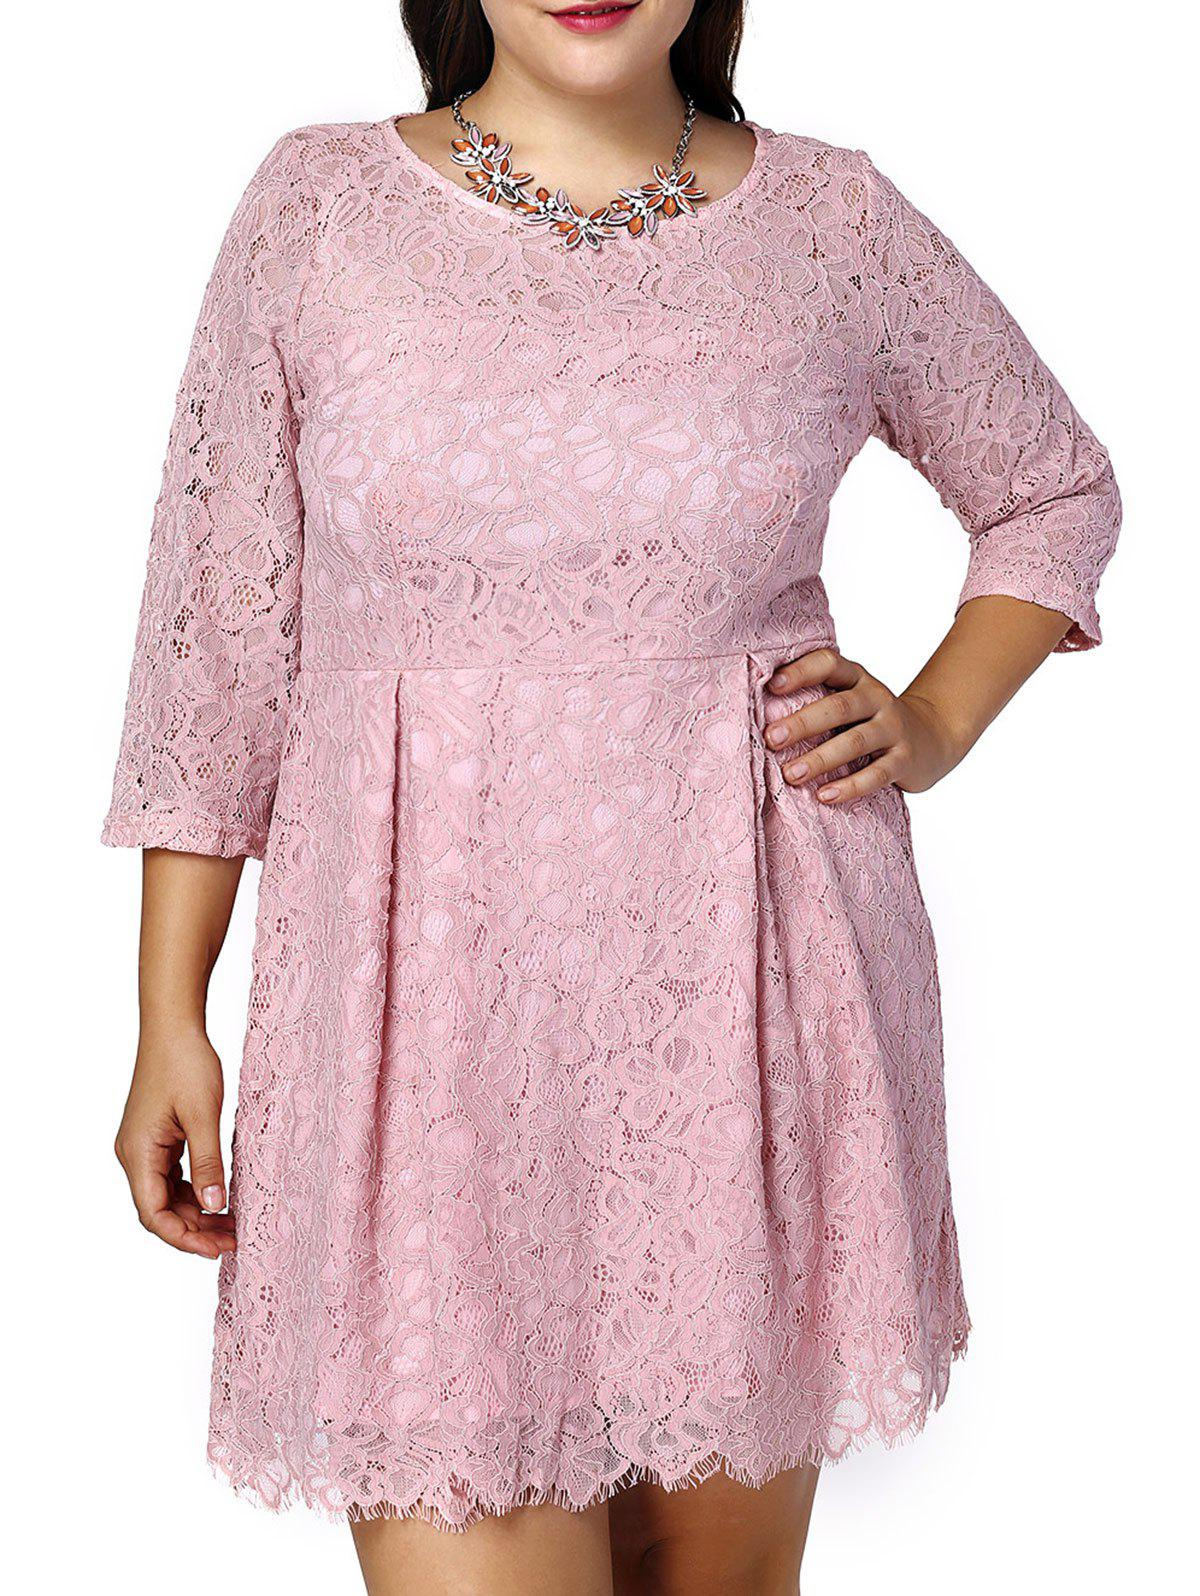 Sweet Plus Size 3/4 Sleeve Scoop Neck Lace Design Women's Dress - PINK 5XL